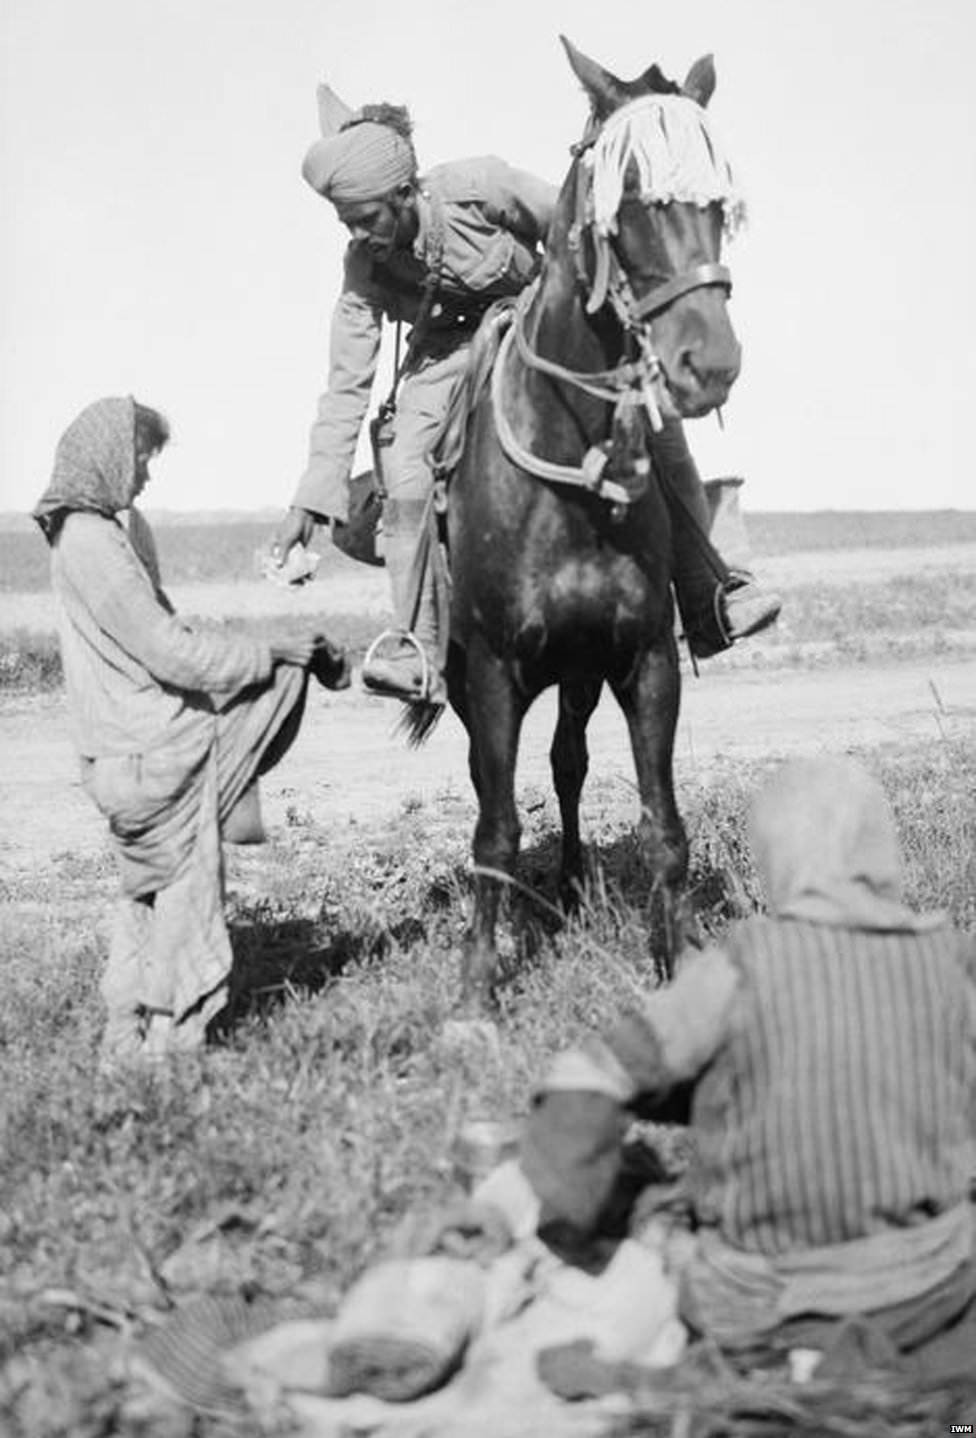 A Sikh Indian cavalryman who has found two starving Christian girls in the desert in Armenia. He leans down from his horse to give one of them half his rations. At the time the men themselves were on short rations, during World War I (Armenian genocide by the Ottoman empire.)